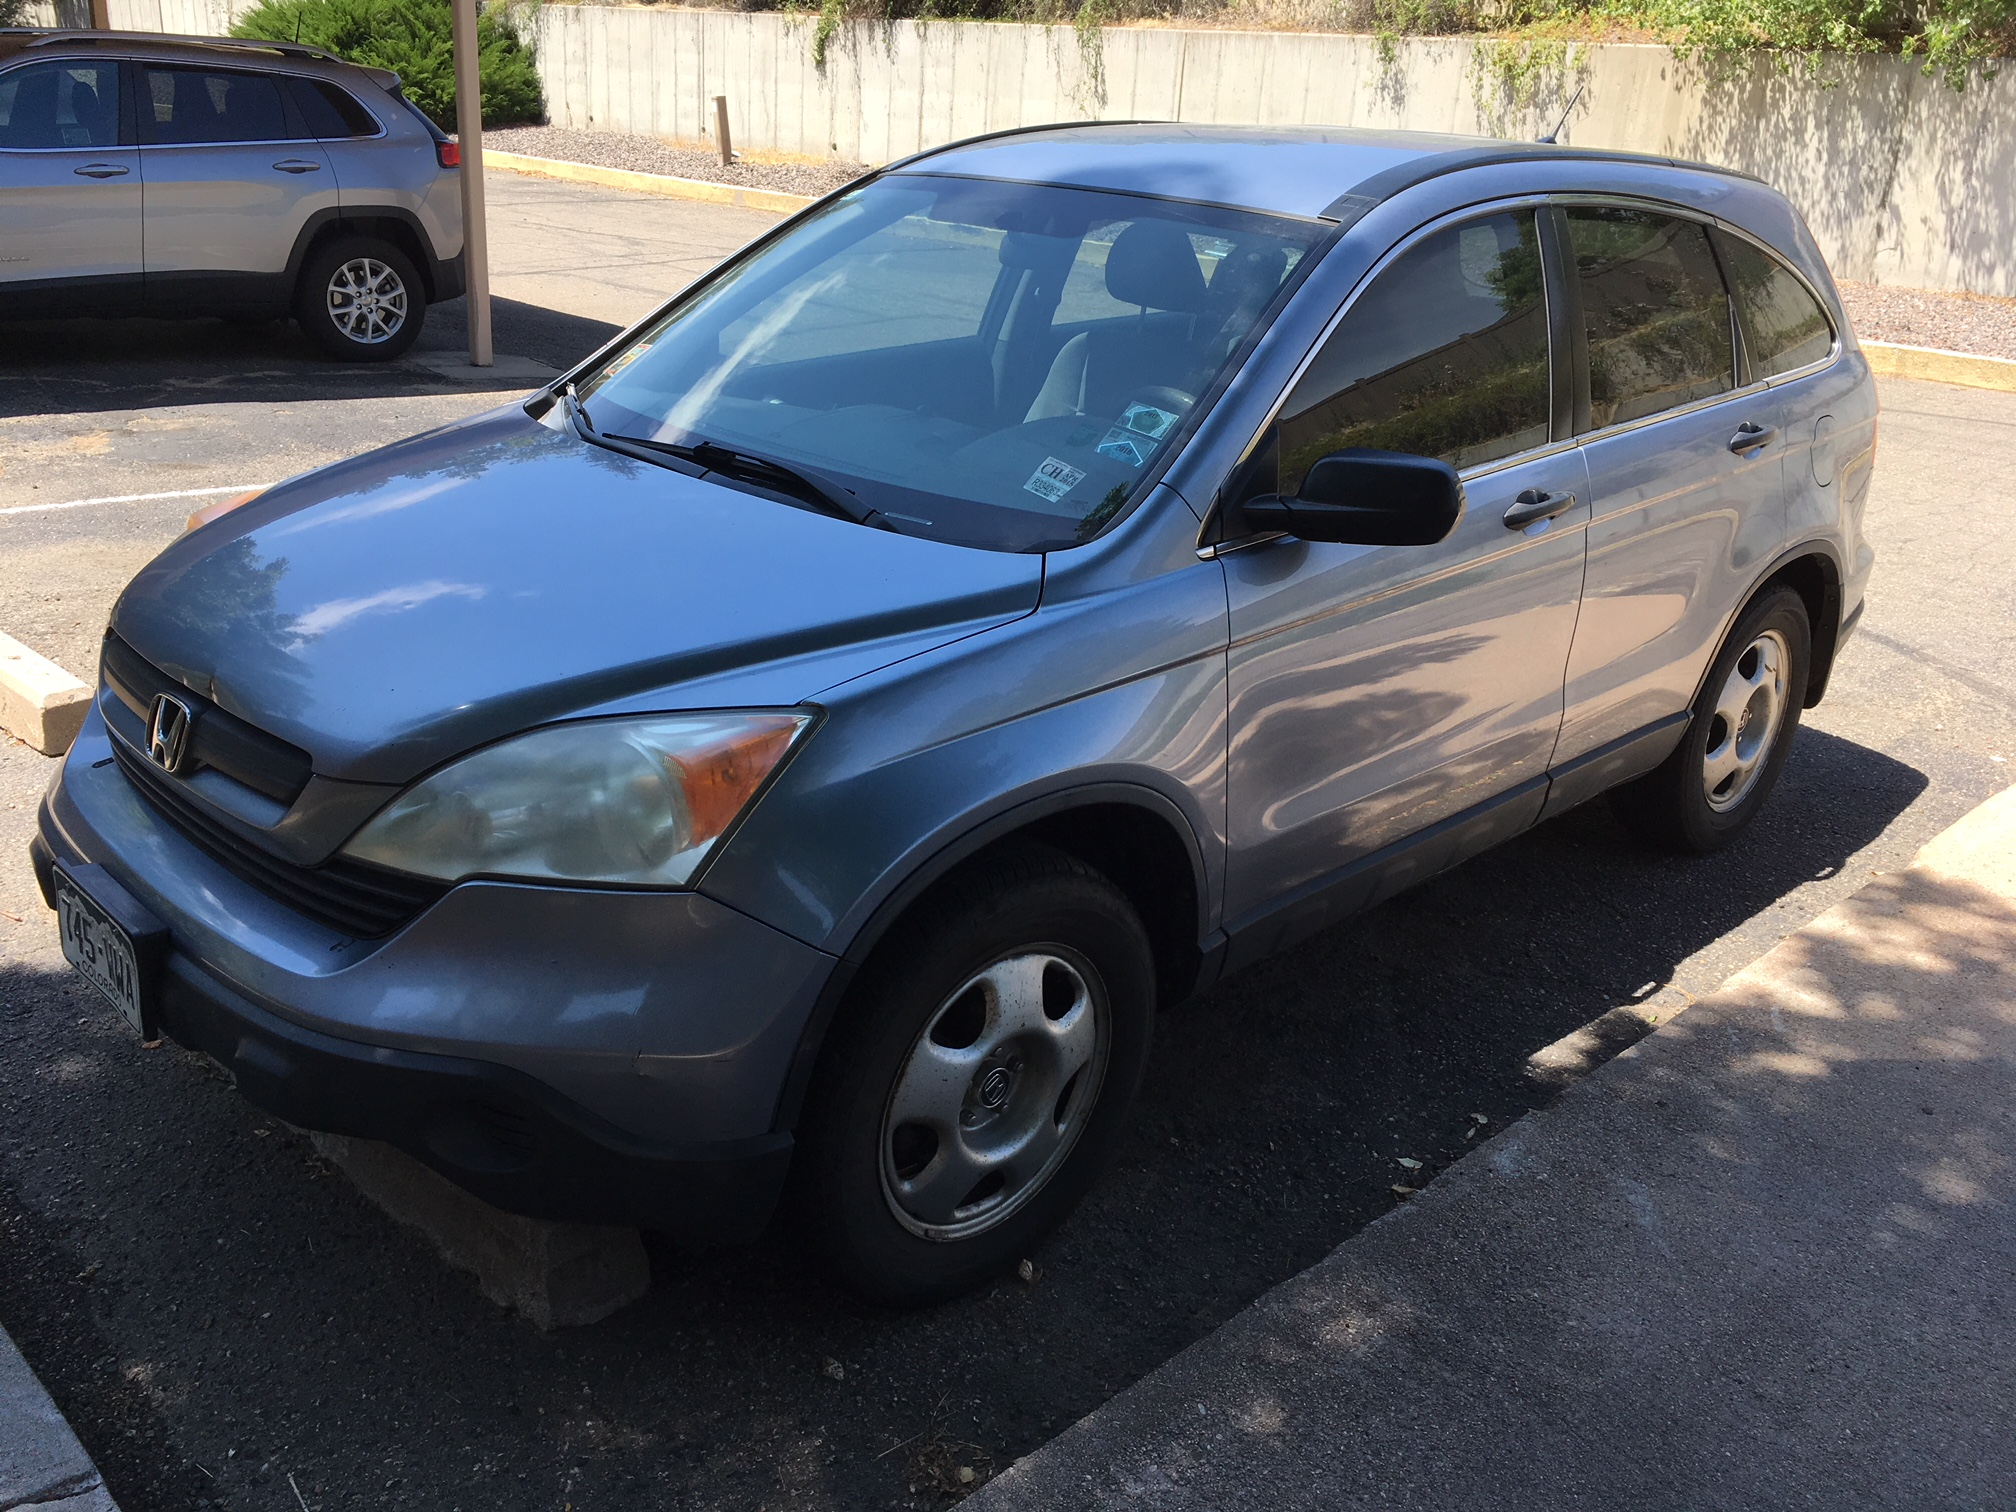 sell-07-honda-crv-Sacramento-North